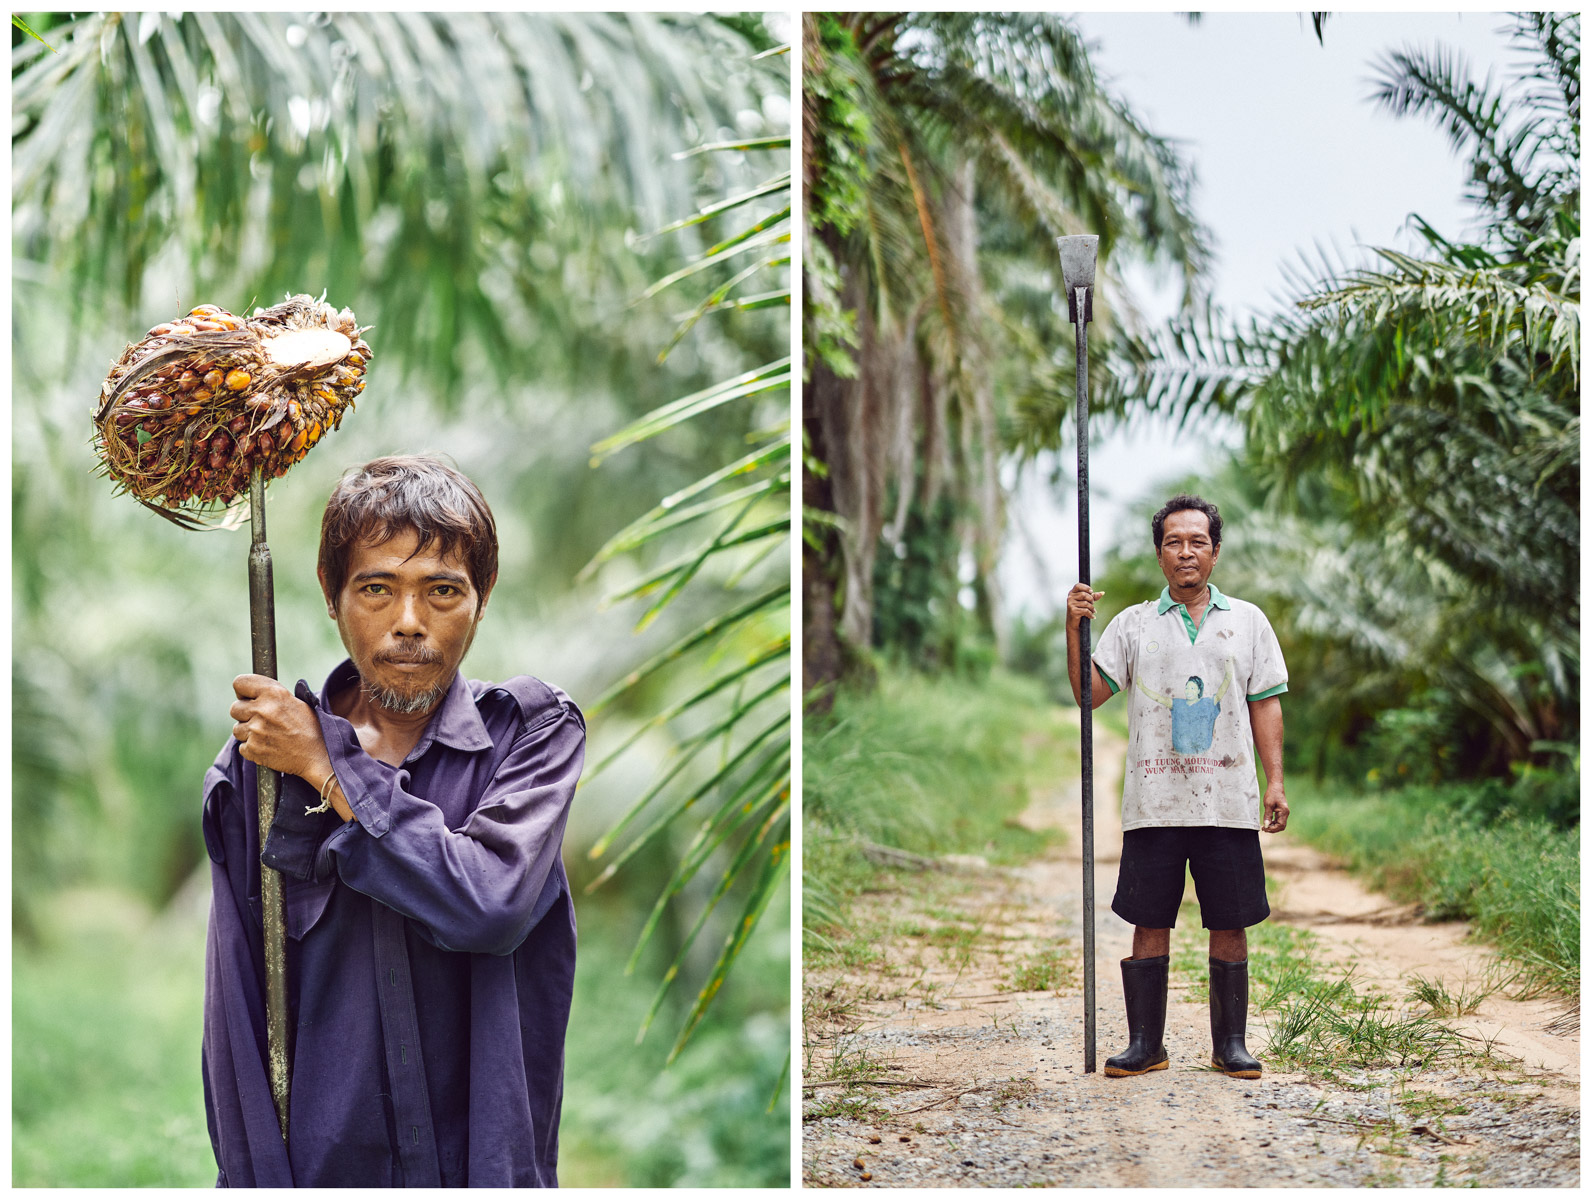 Portraits of two workers on a palm oil plantation in Surat Thani in southern Thailand.